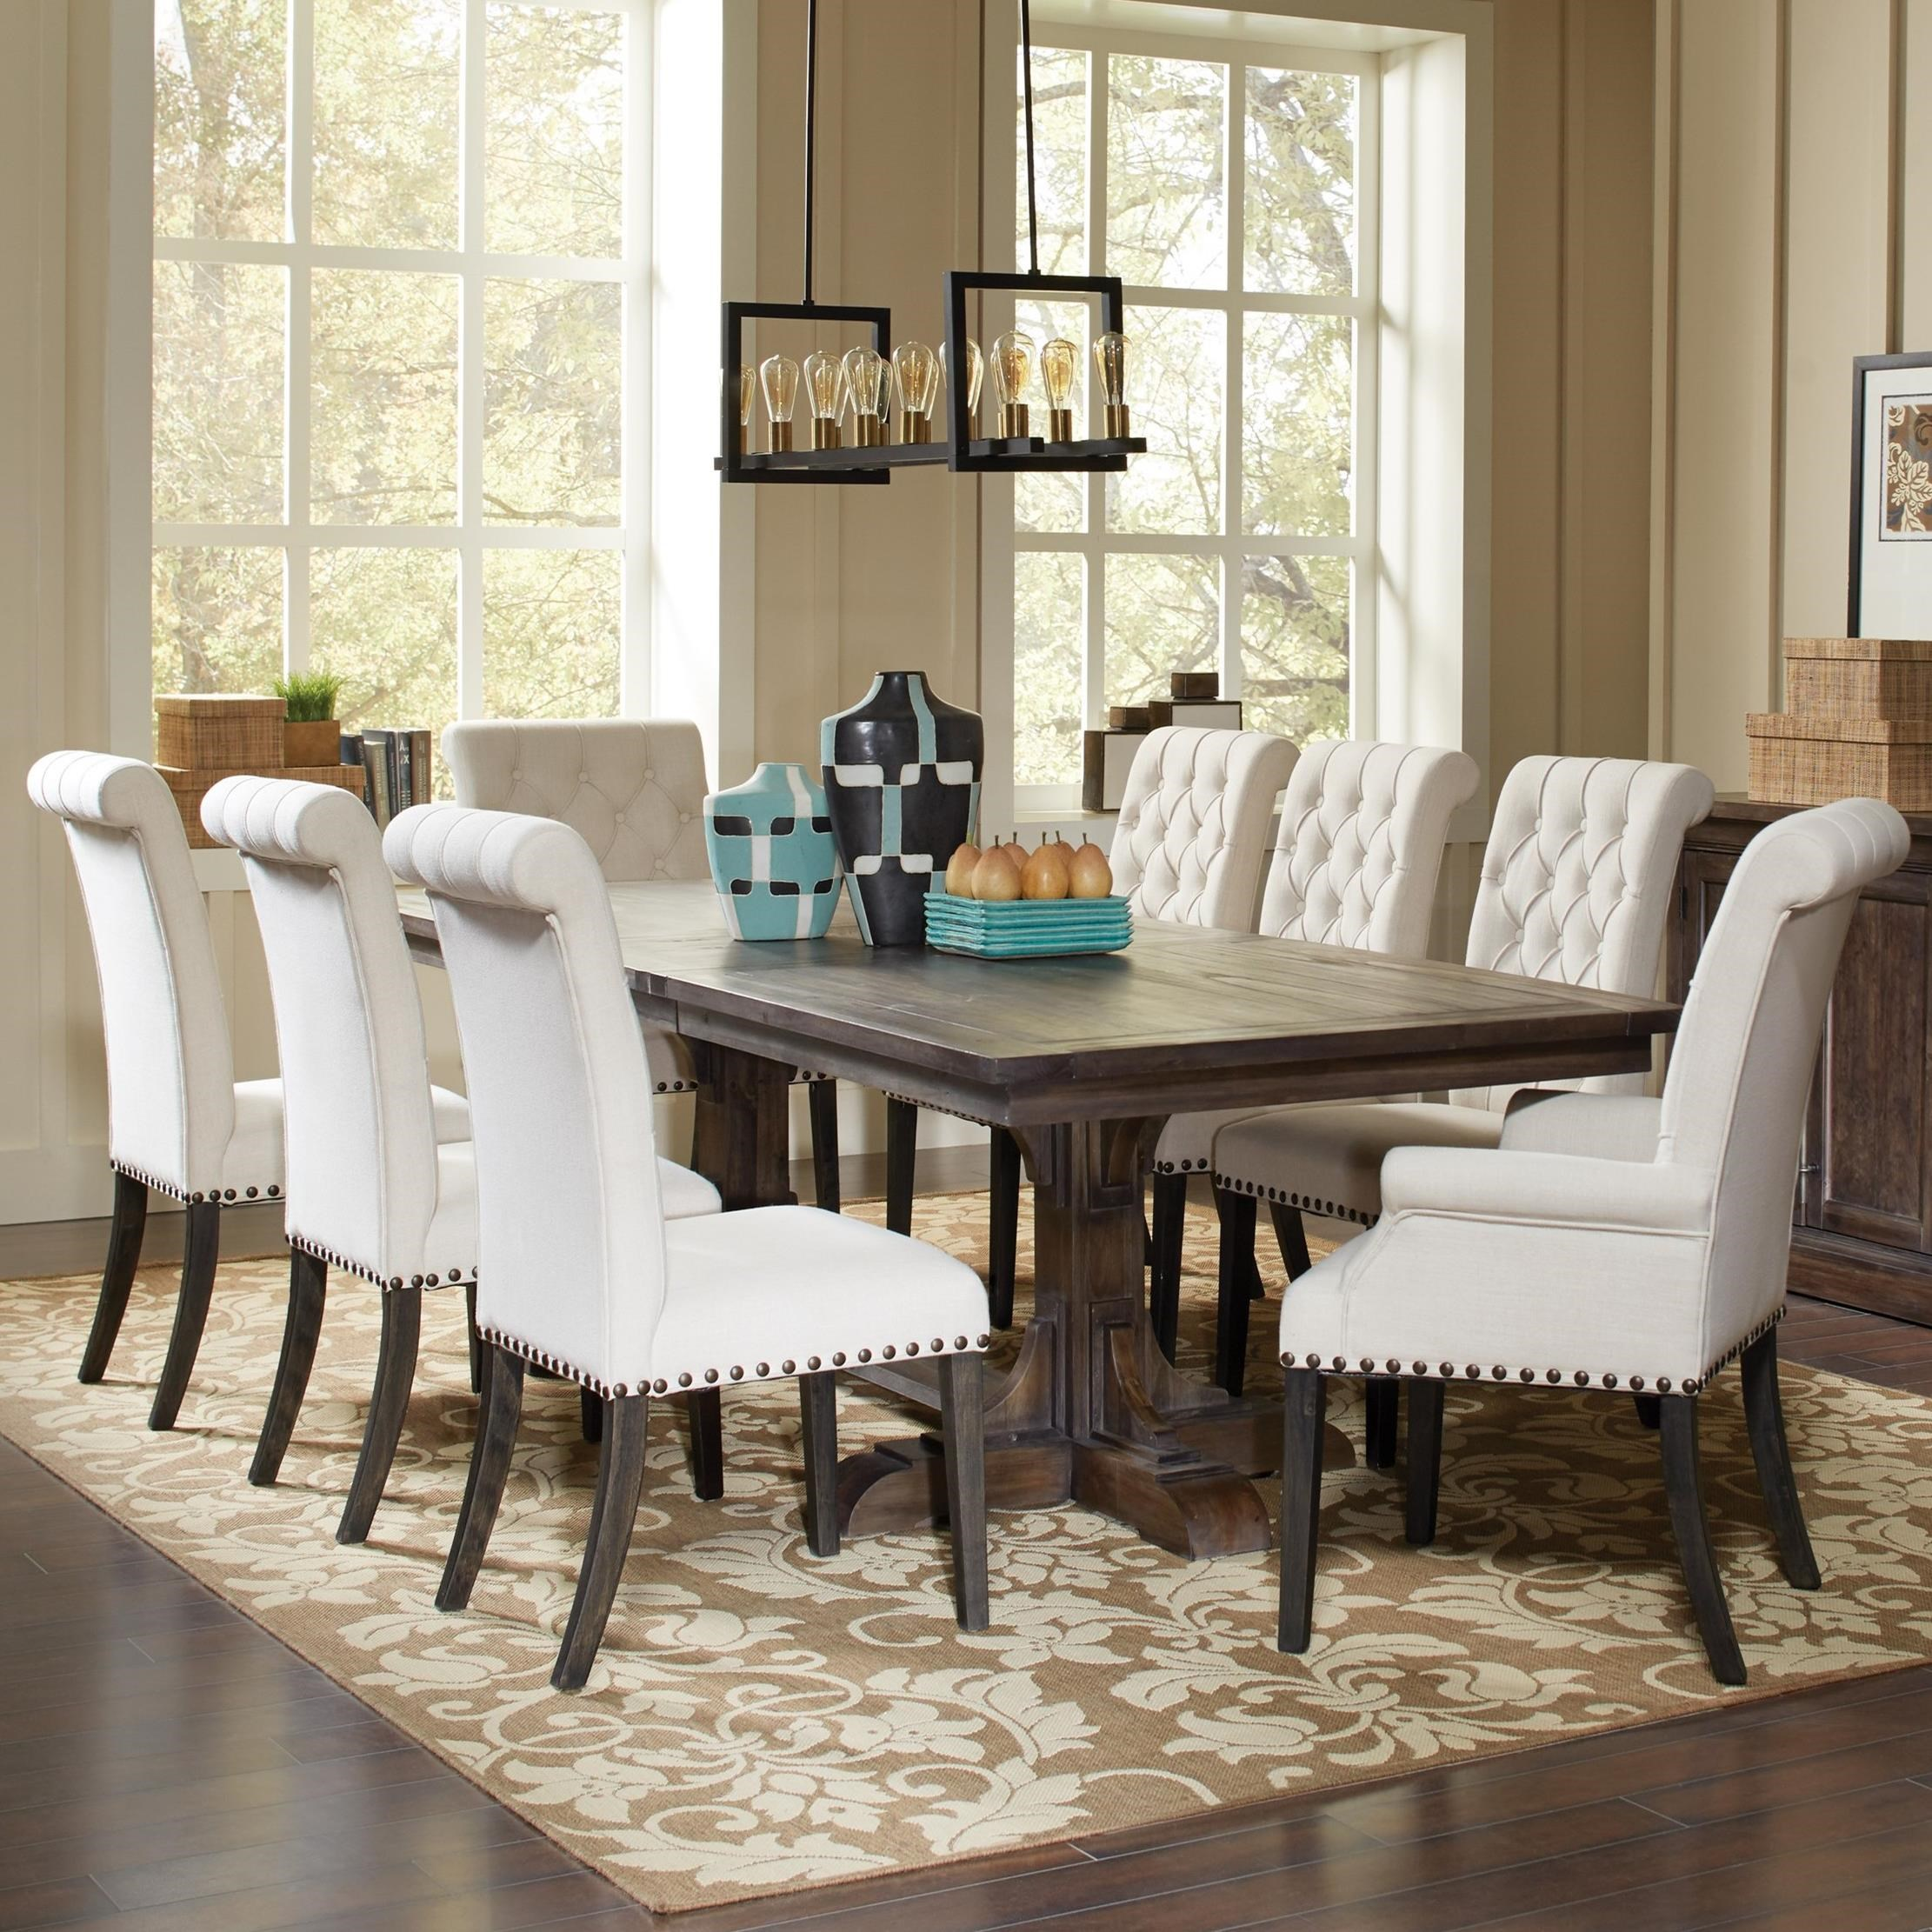 Dining Room Upholstered Chairs Traditional Dining Table And Cream Upholstered Chair Set By